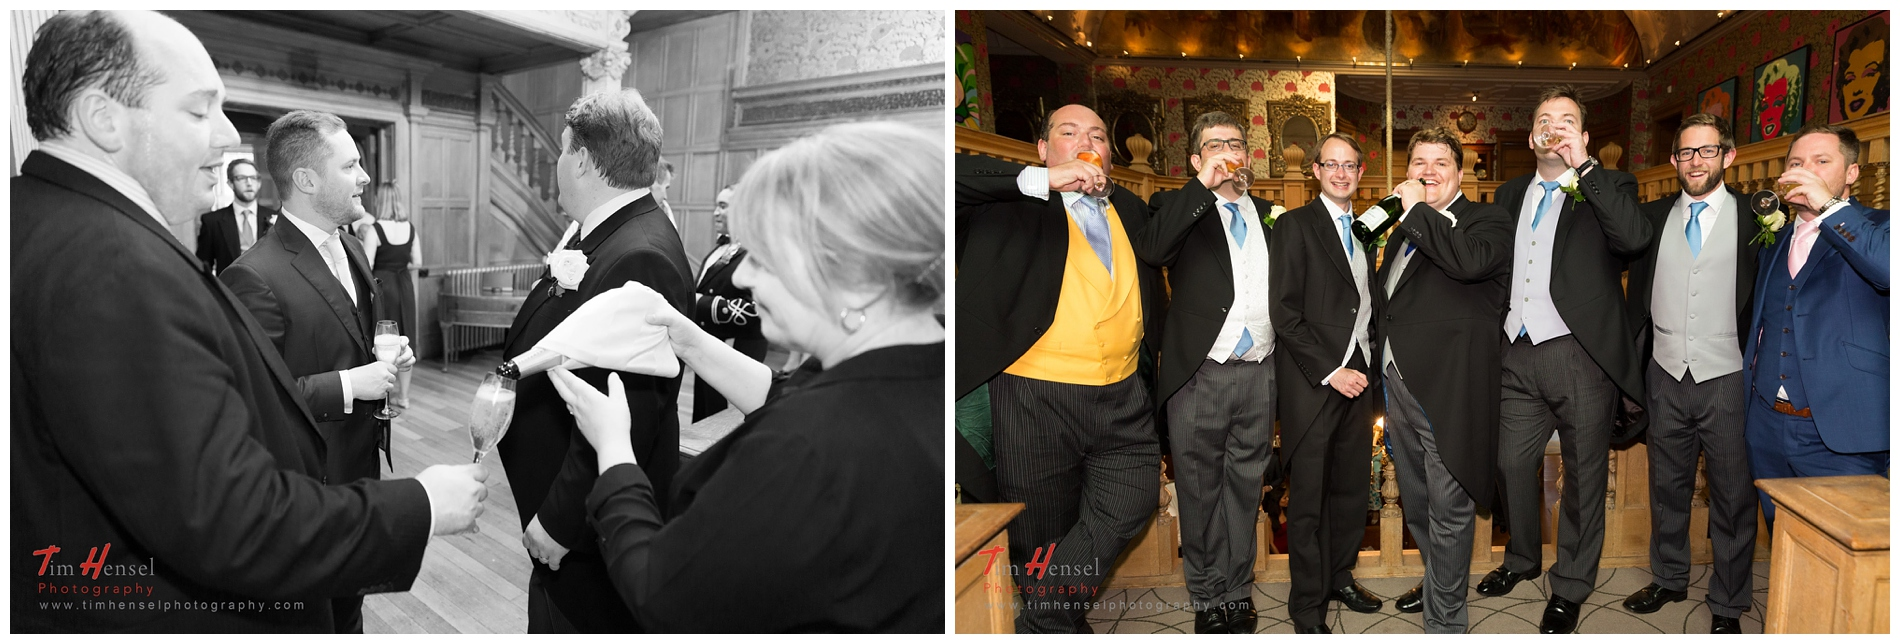 wedding drinks reception photos at thornbridge hall - relaxed, fun and natural.